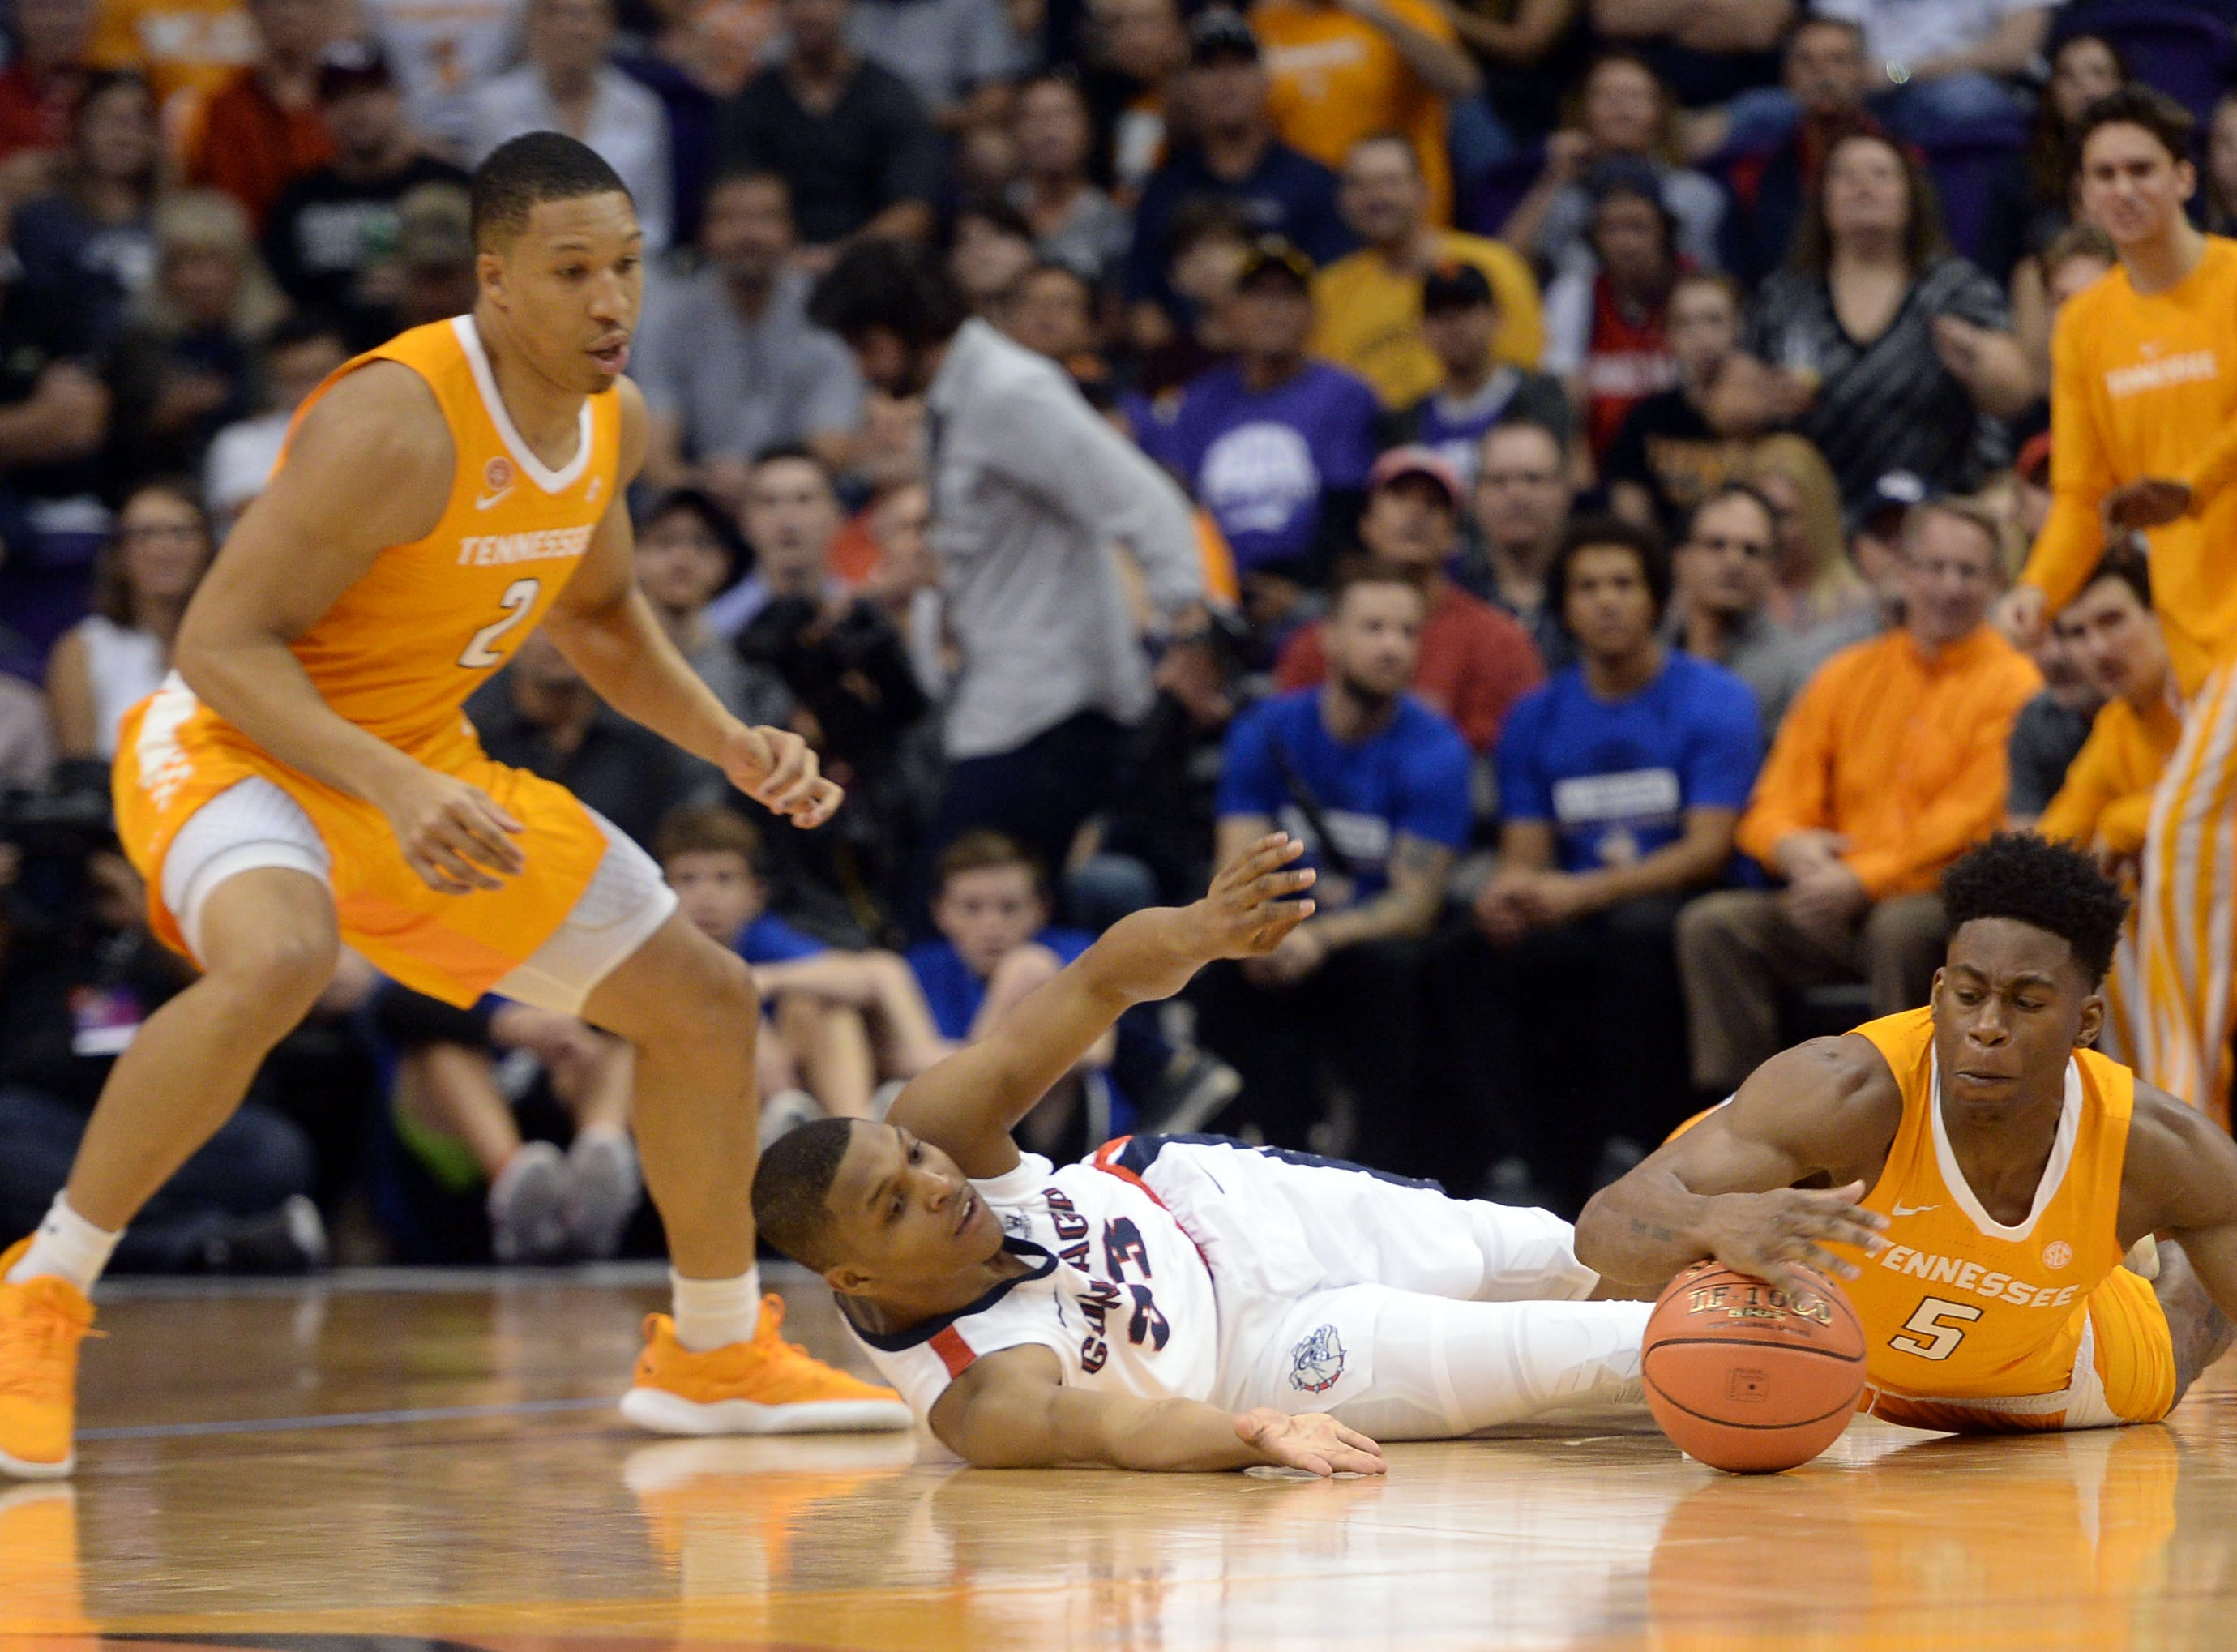 Dec 9, 2018; Phoenix, AZ, USA; Tennessee Volunteers guard Admiral Schofield (5) beats Gonzaga Bulldogs guard Zach Norvell Jr. (23) to a loose ball during the first half at Talking Stick Resort Arena.